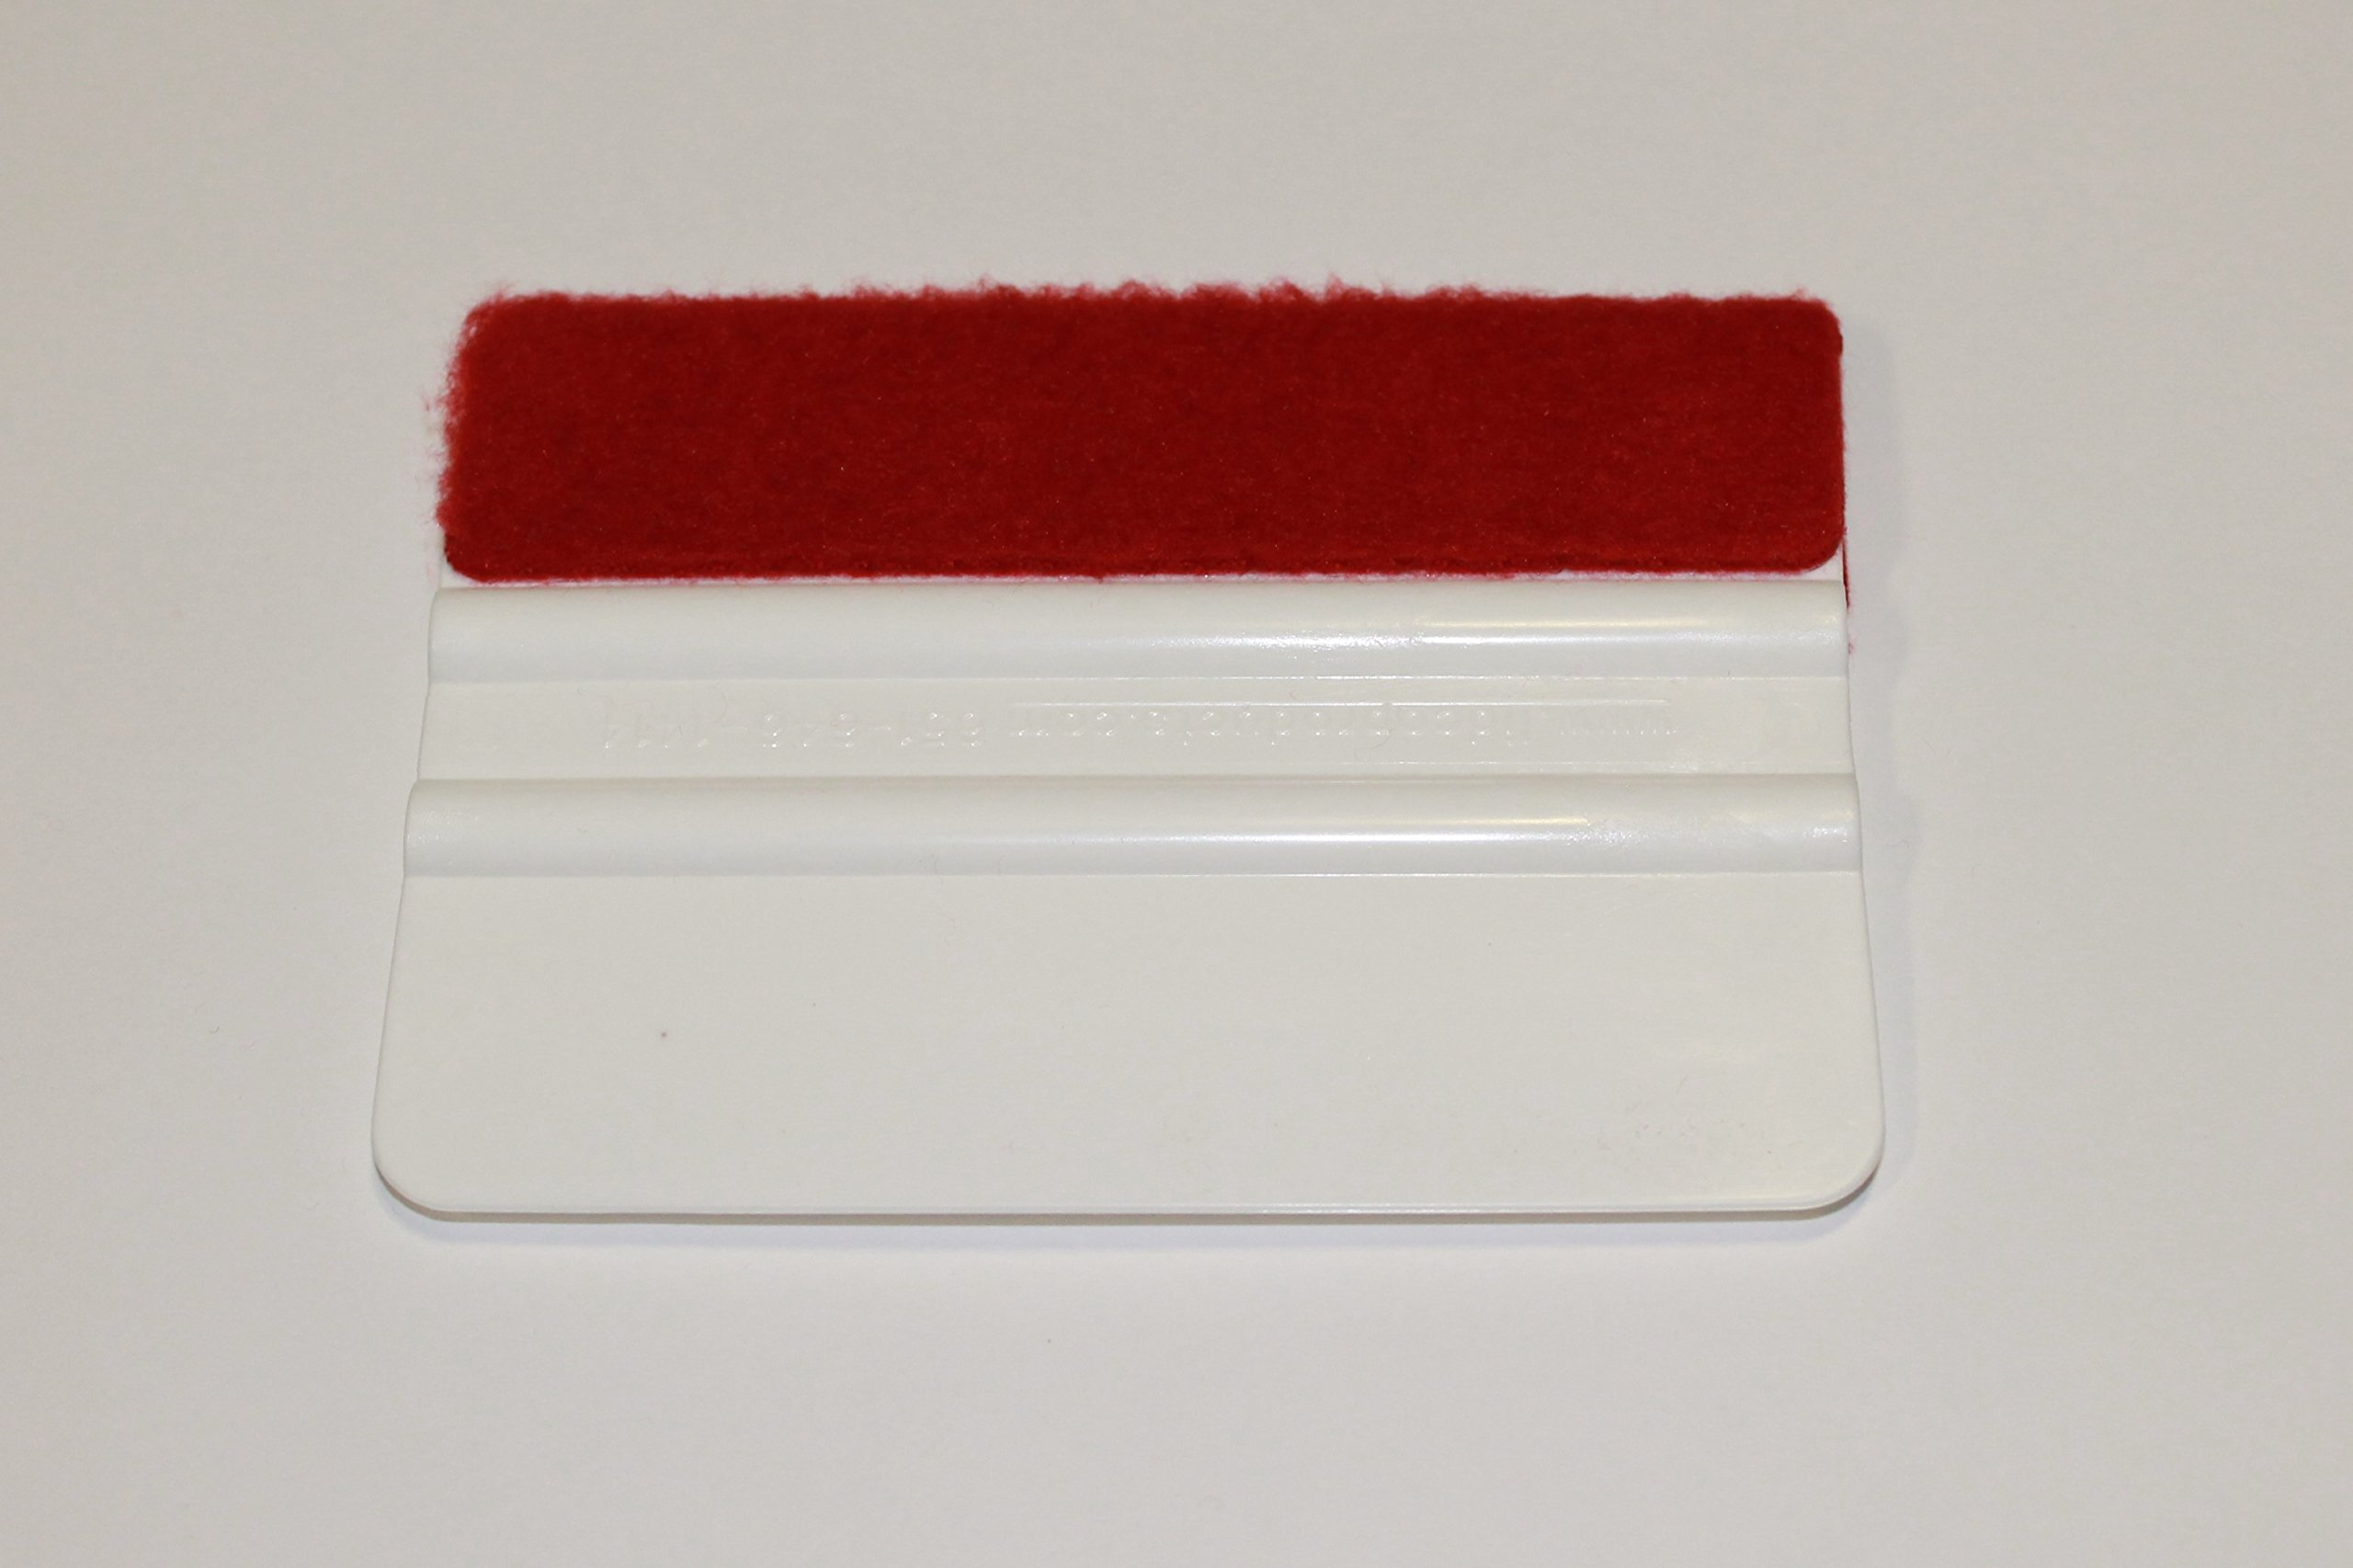 INDUSTRY STANDARD 4-INCH SQUEEGEE/ROLLEPRO WRAPIDGLIDE MICRO-FLEECE SQUEEGEE COVERS by Rollepro (Image #1)